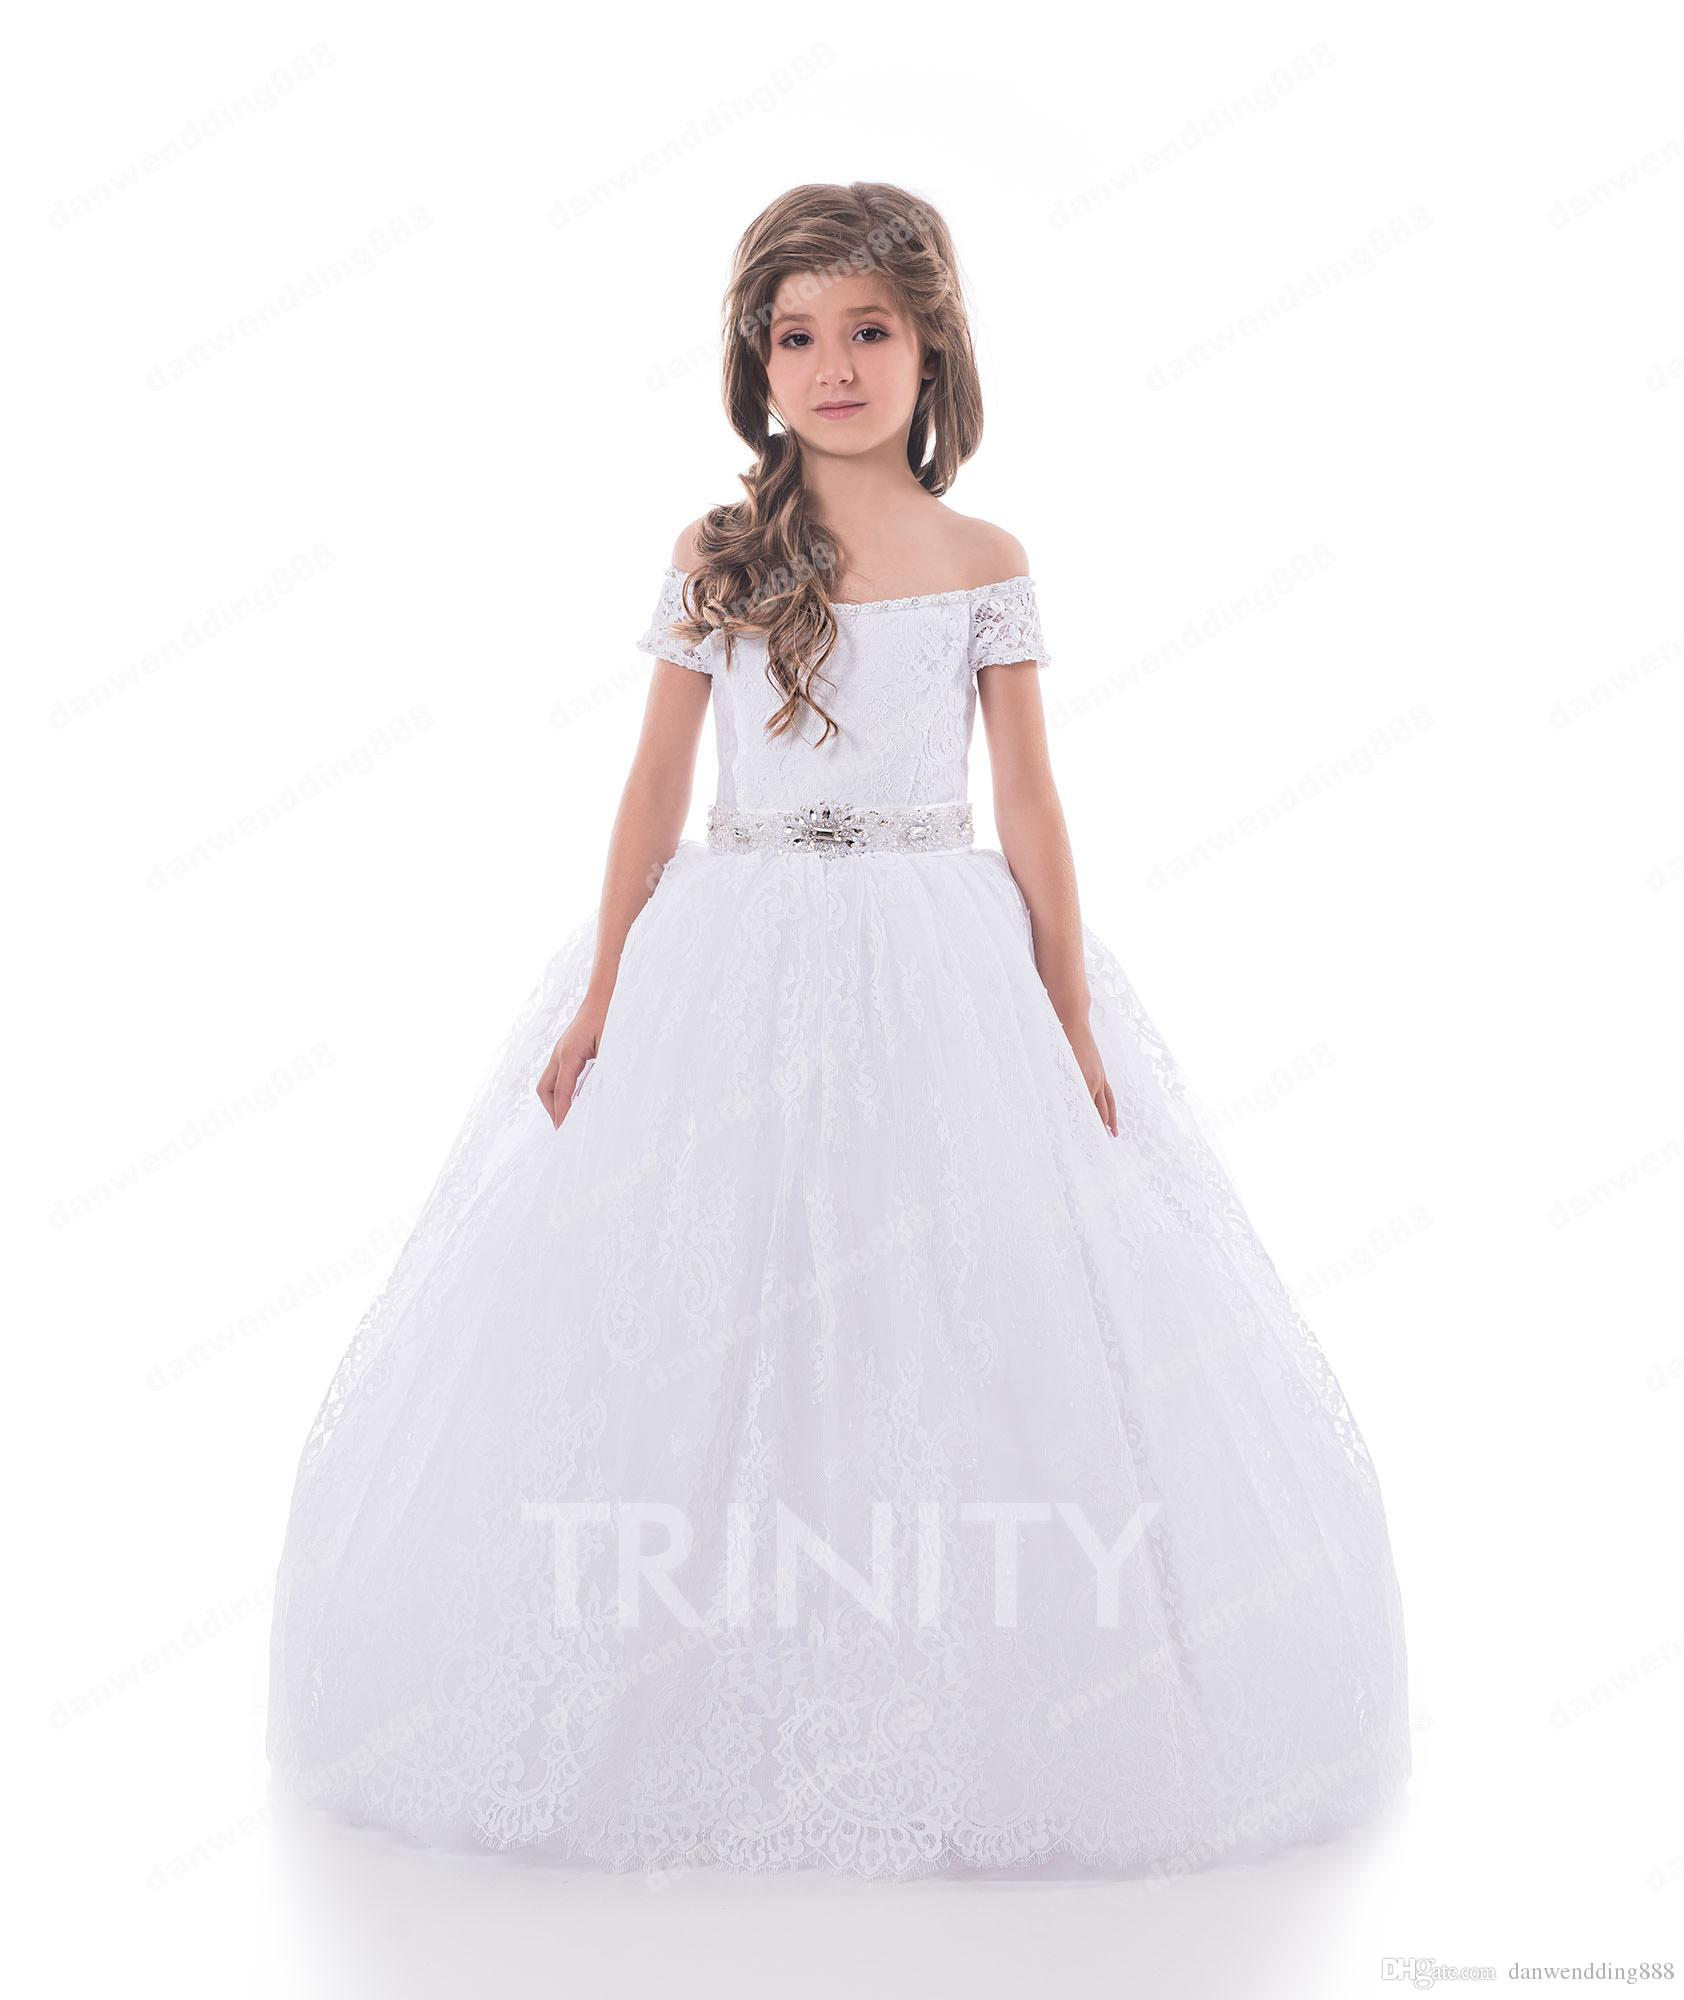 85ce5b75355 Beauty White Lace Off Shoulder Sash Flower Girl Dresses Princess Dresses  Girl s Pageant Dresses Custom Made Size 2-6 8 10 12 14 KF327250